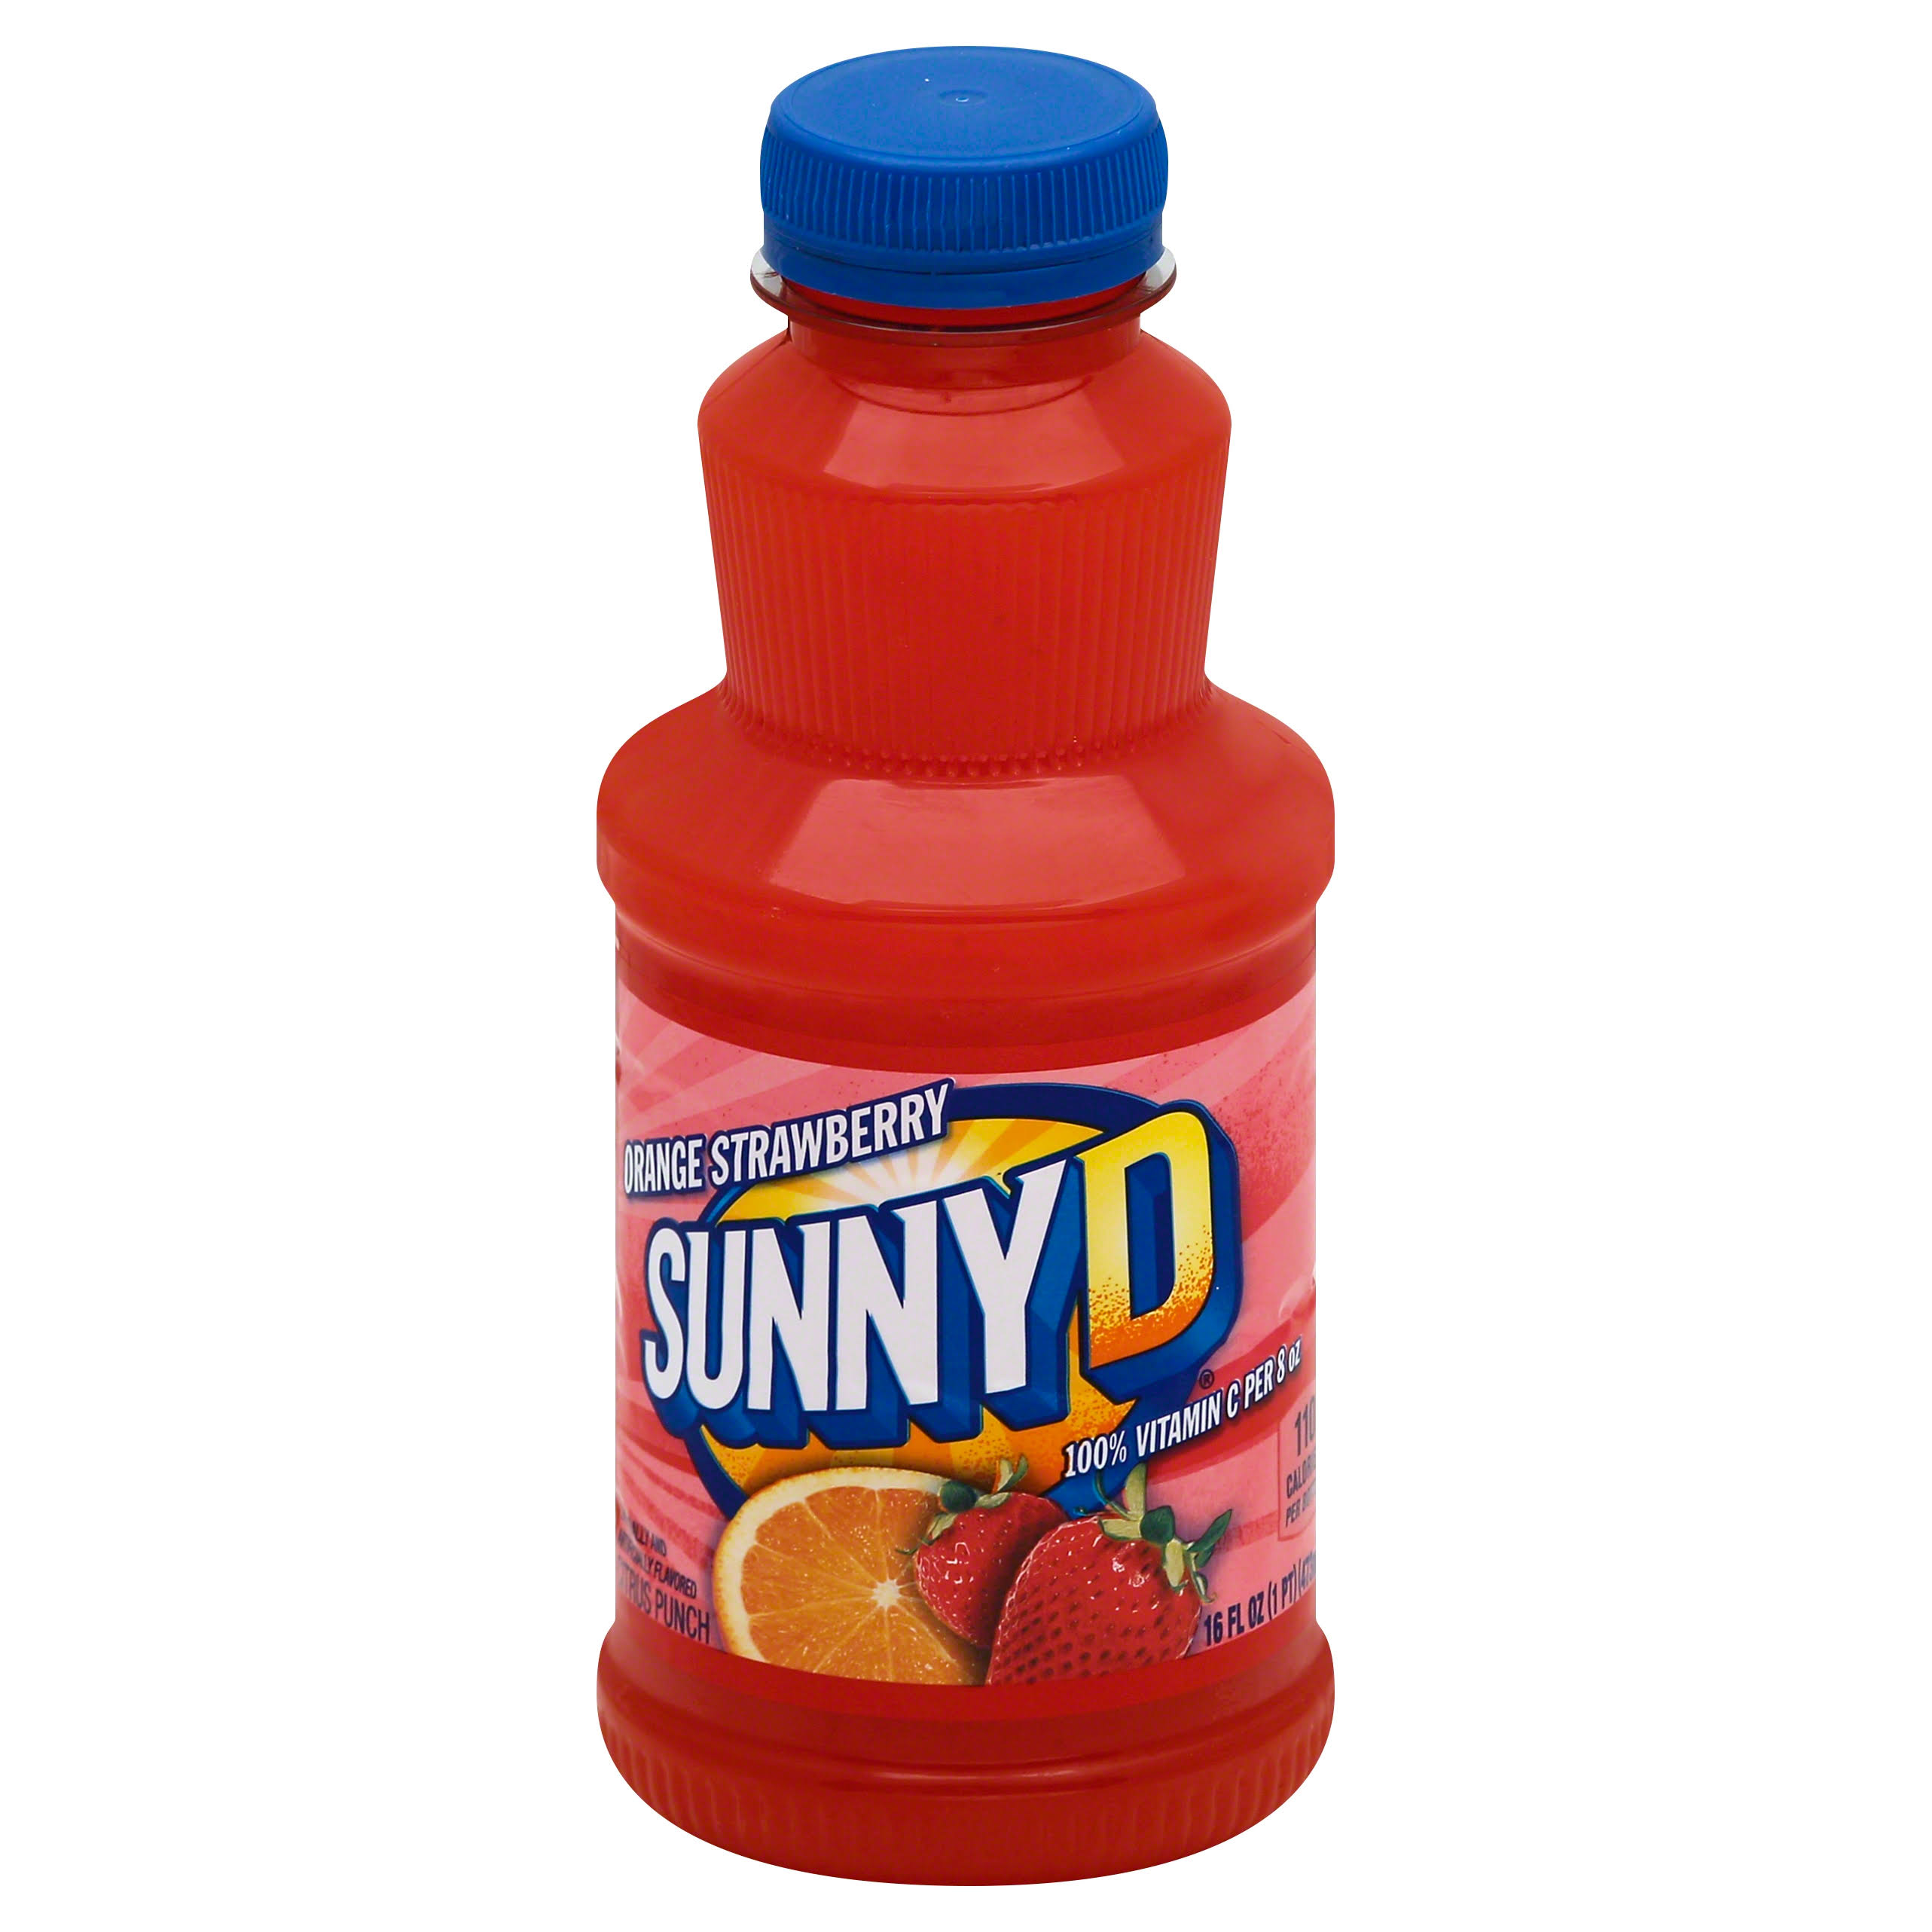 Sunnyd Citrus Punch - Orange Strawberry, 16oz